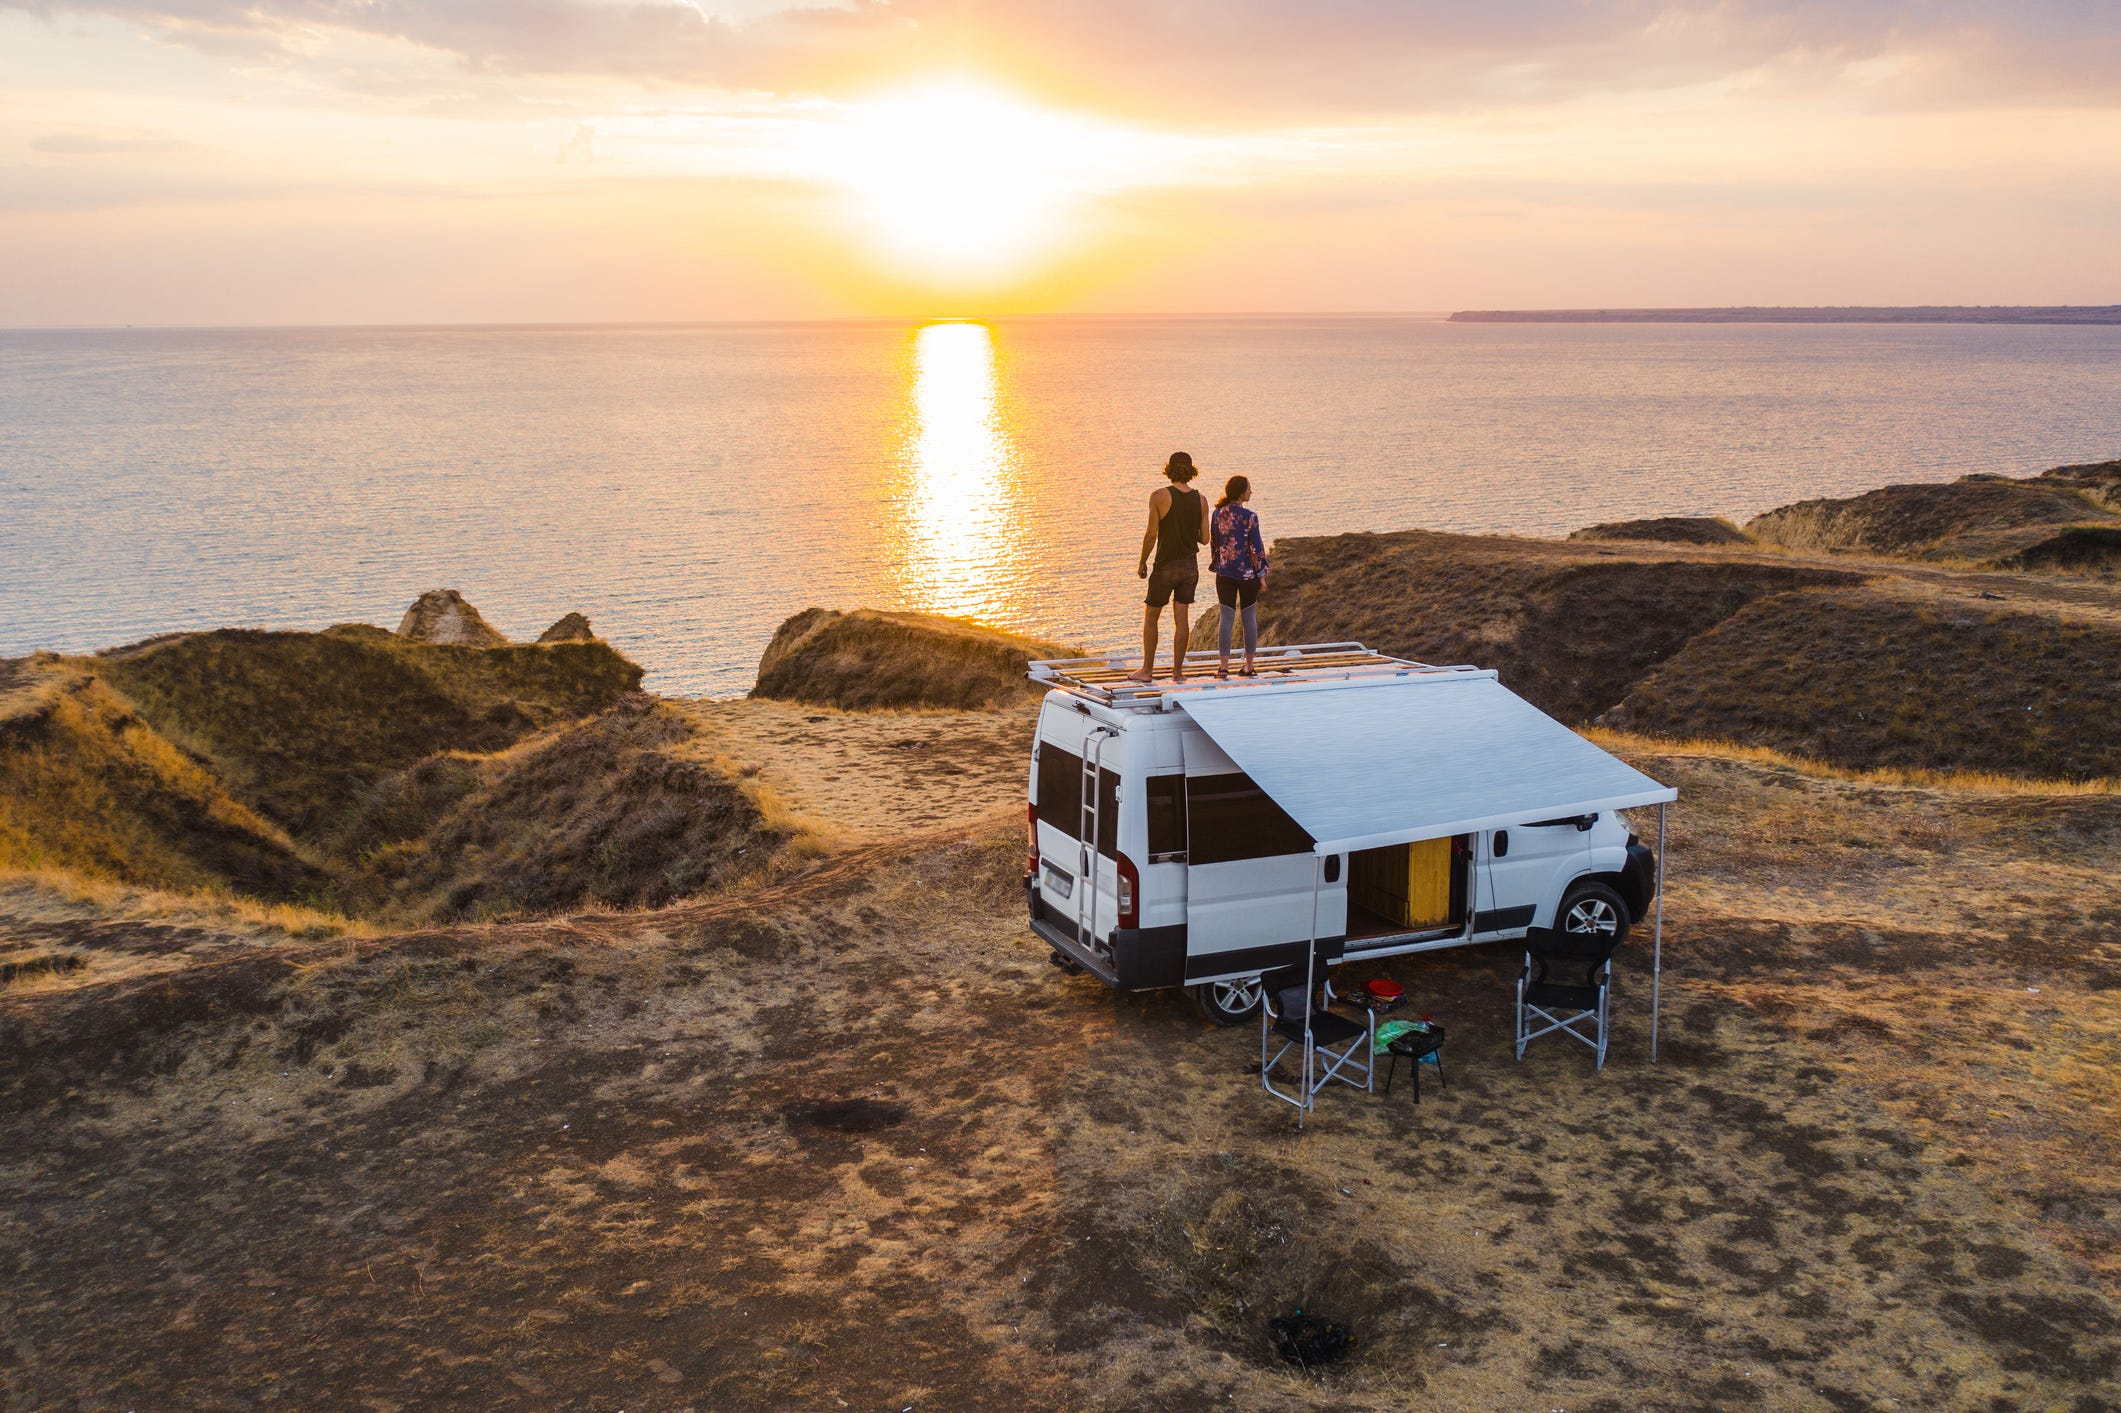 Take your road trip to the next level in one of these over-the-top camper vans or RVs